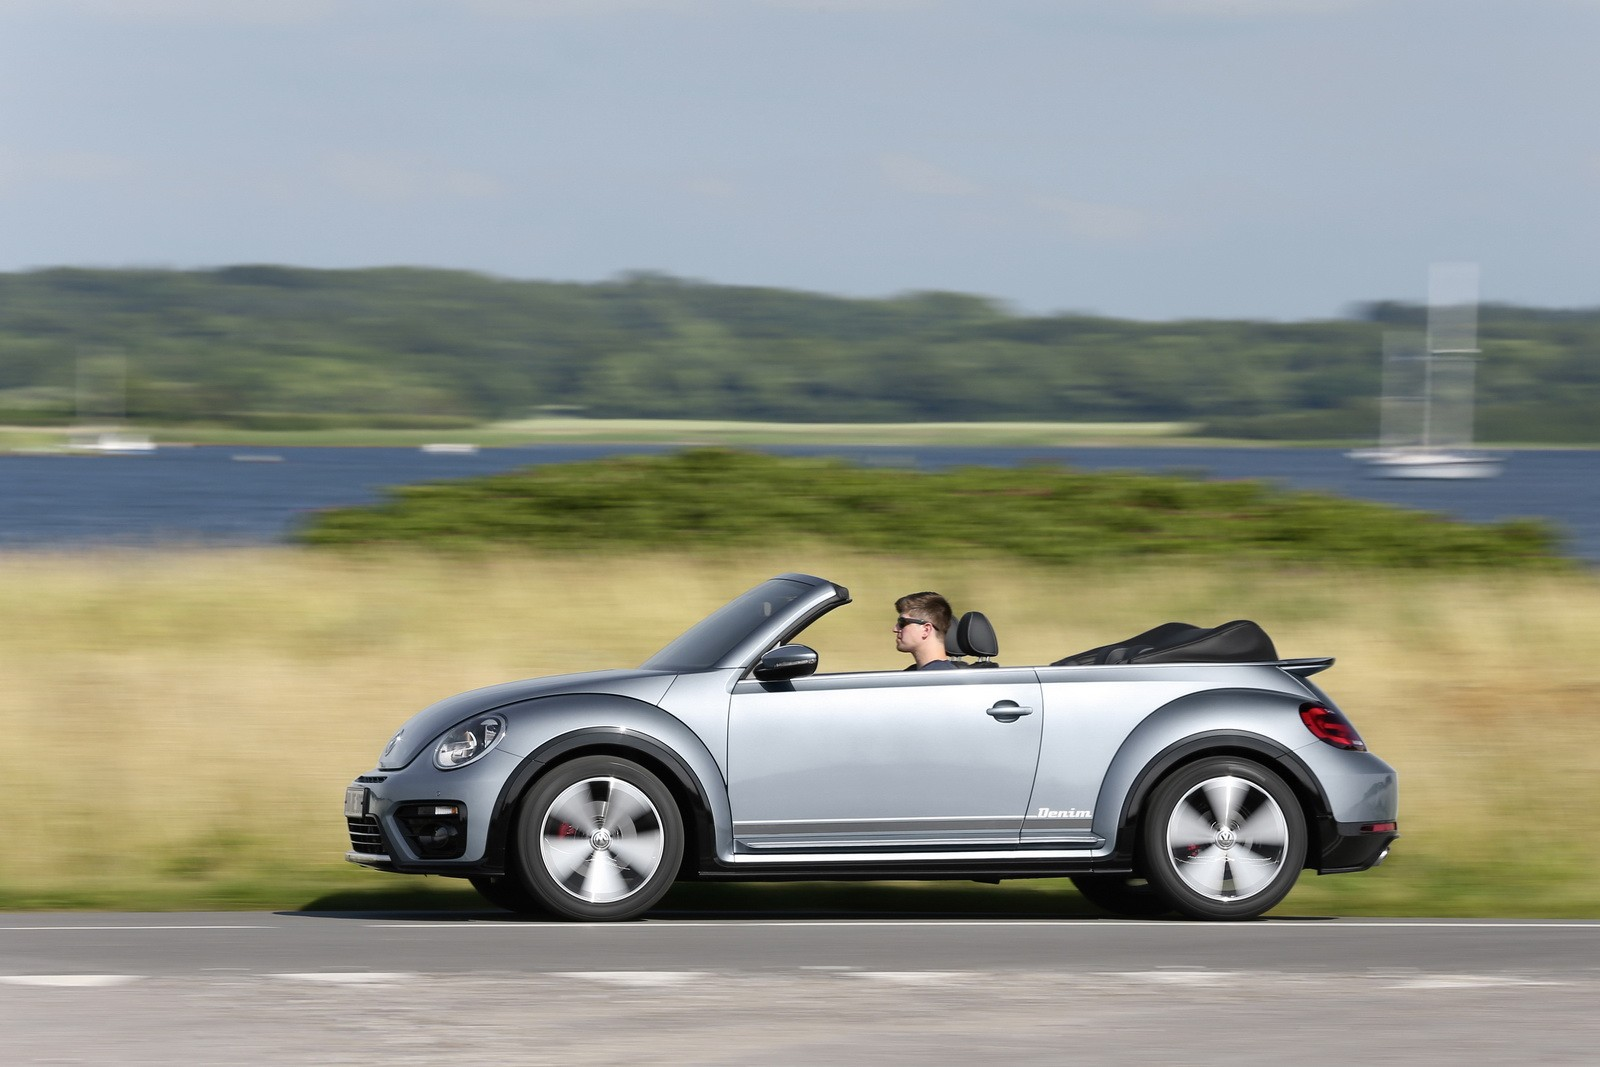 2017 volkswagen beetle detailed in new photos and videos autoevolution. Black Bedroom Furniture Sets. Home Design Ideas